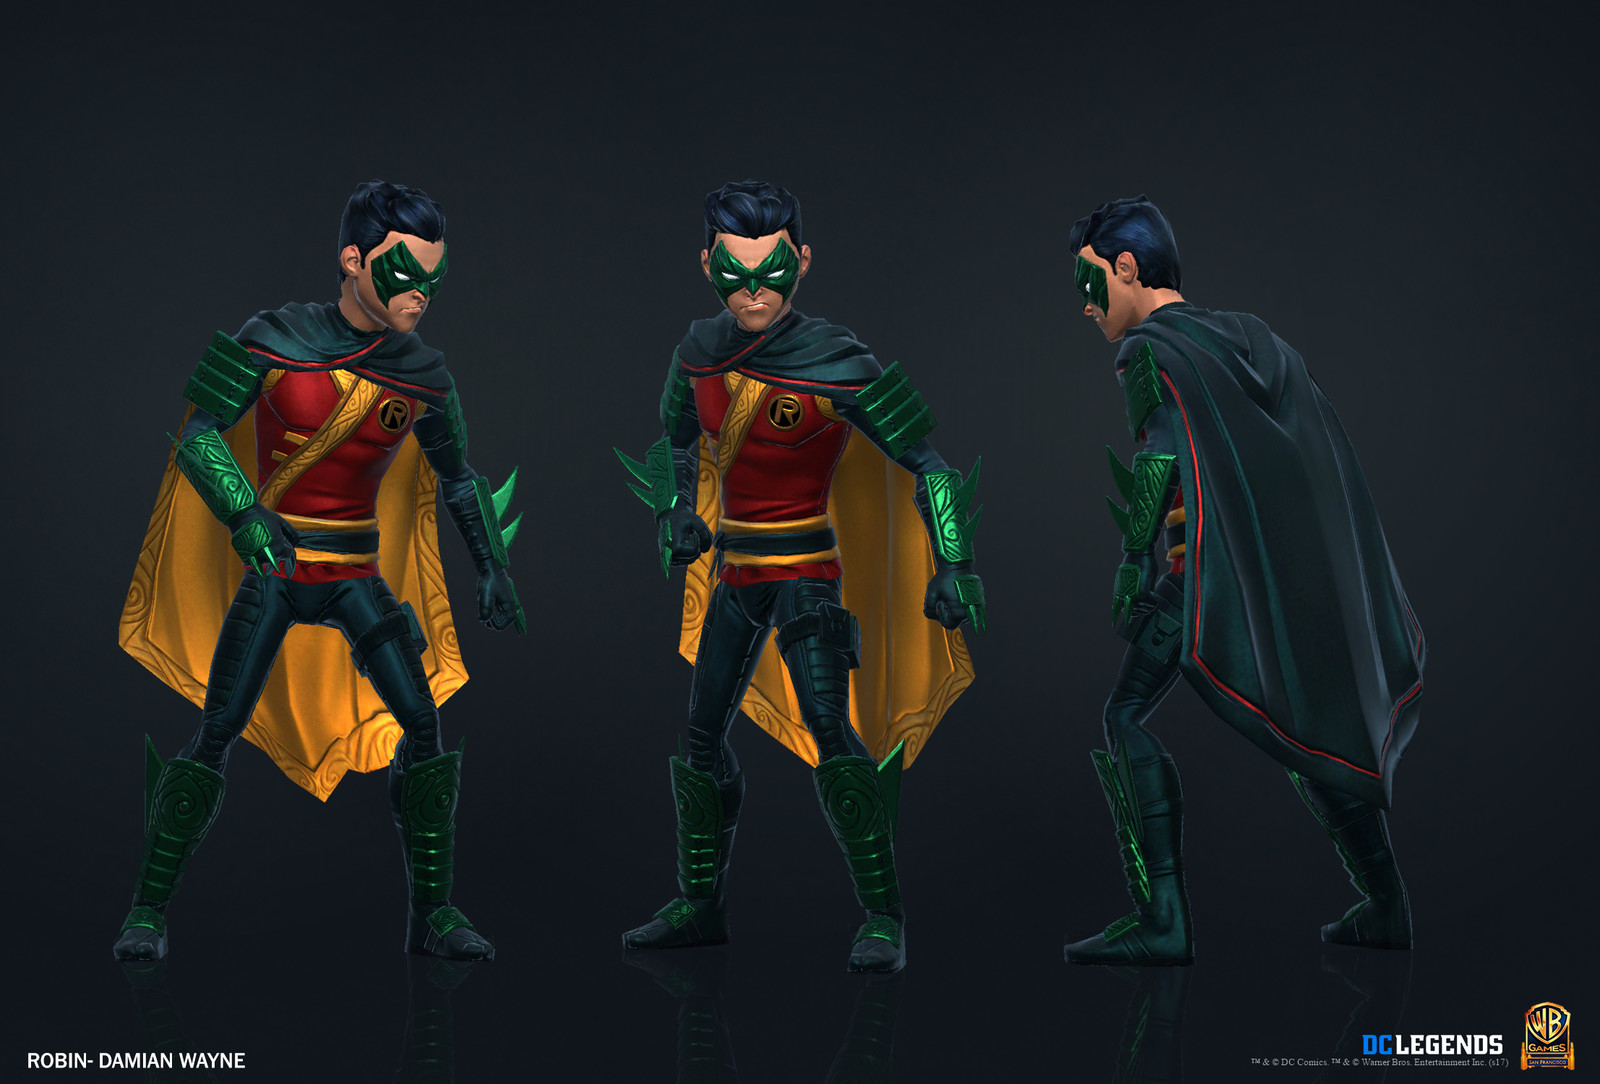 Robin Legendary High Poly, Low Poly and Textures/Material work done by me. Additional Texture/Material pass done by Rachelle Danielle